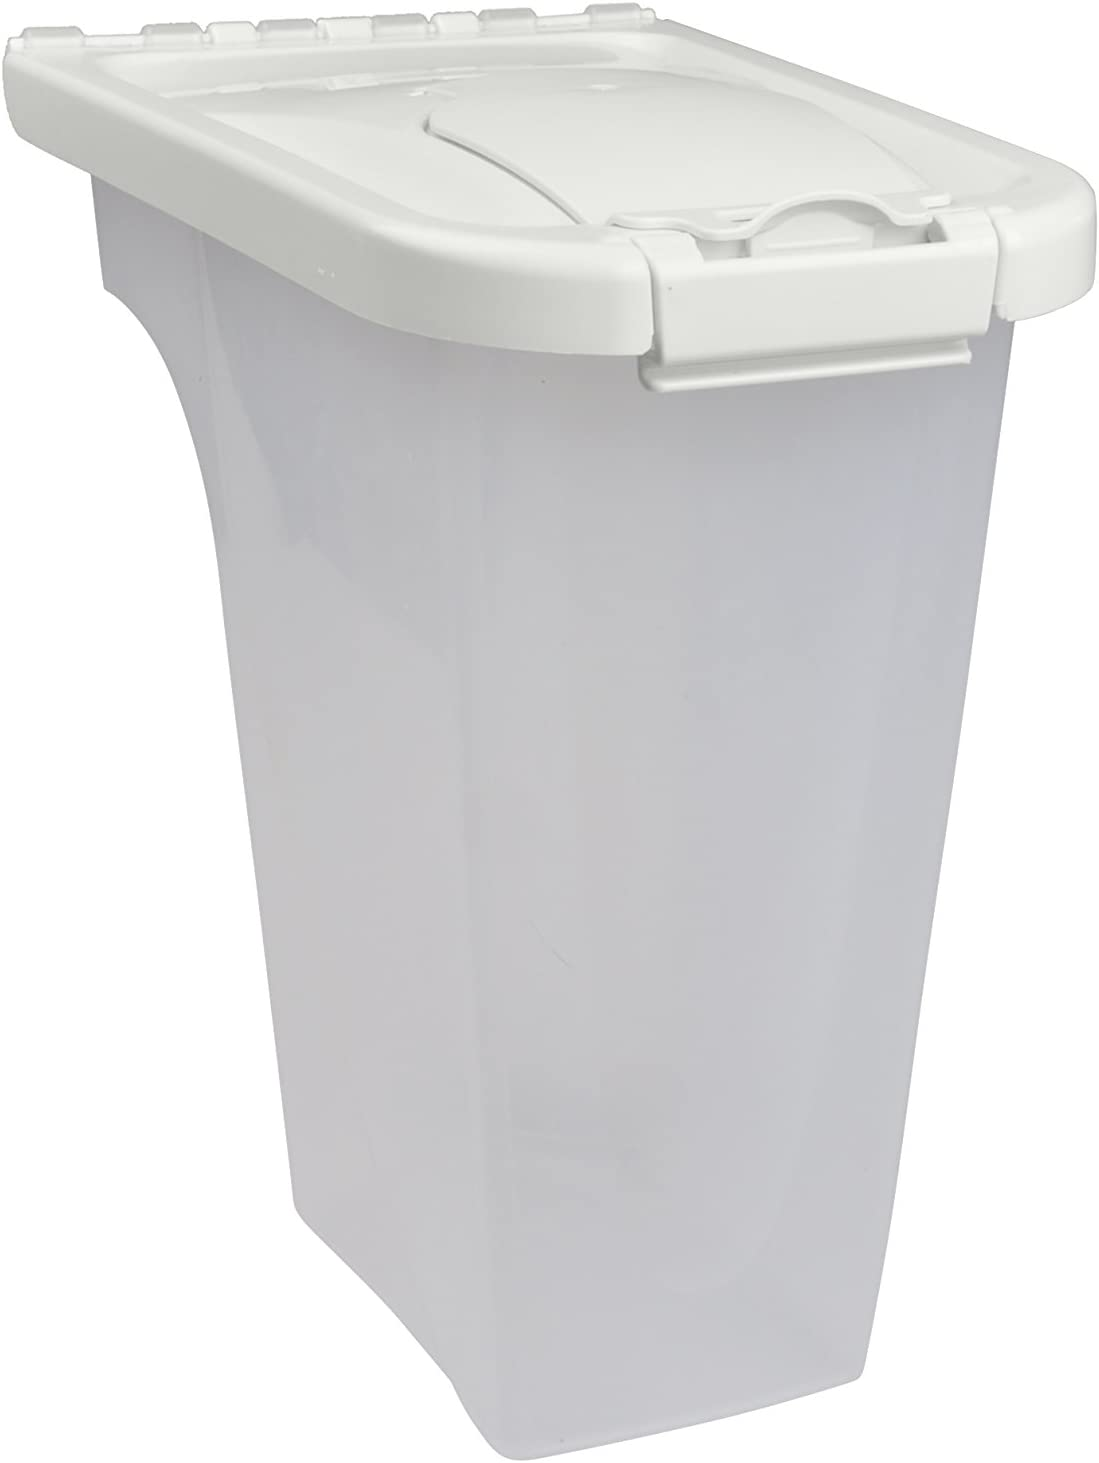 Van Ness 4-Pound Food Dispenser with Fresh-Tite Seal, White , Large (FD4)